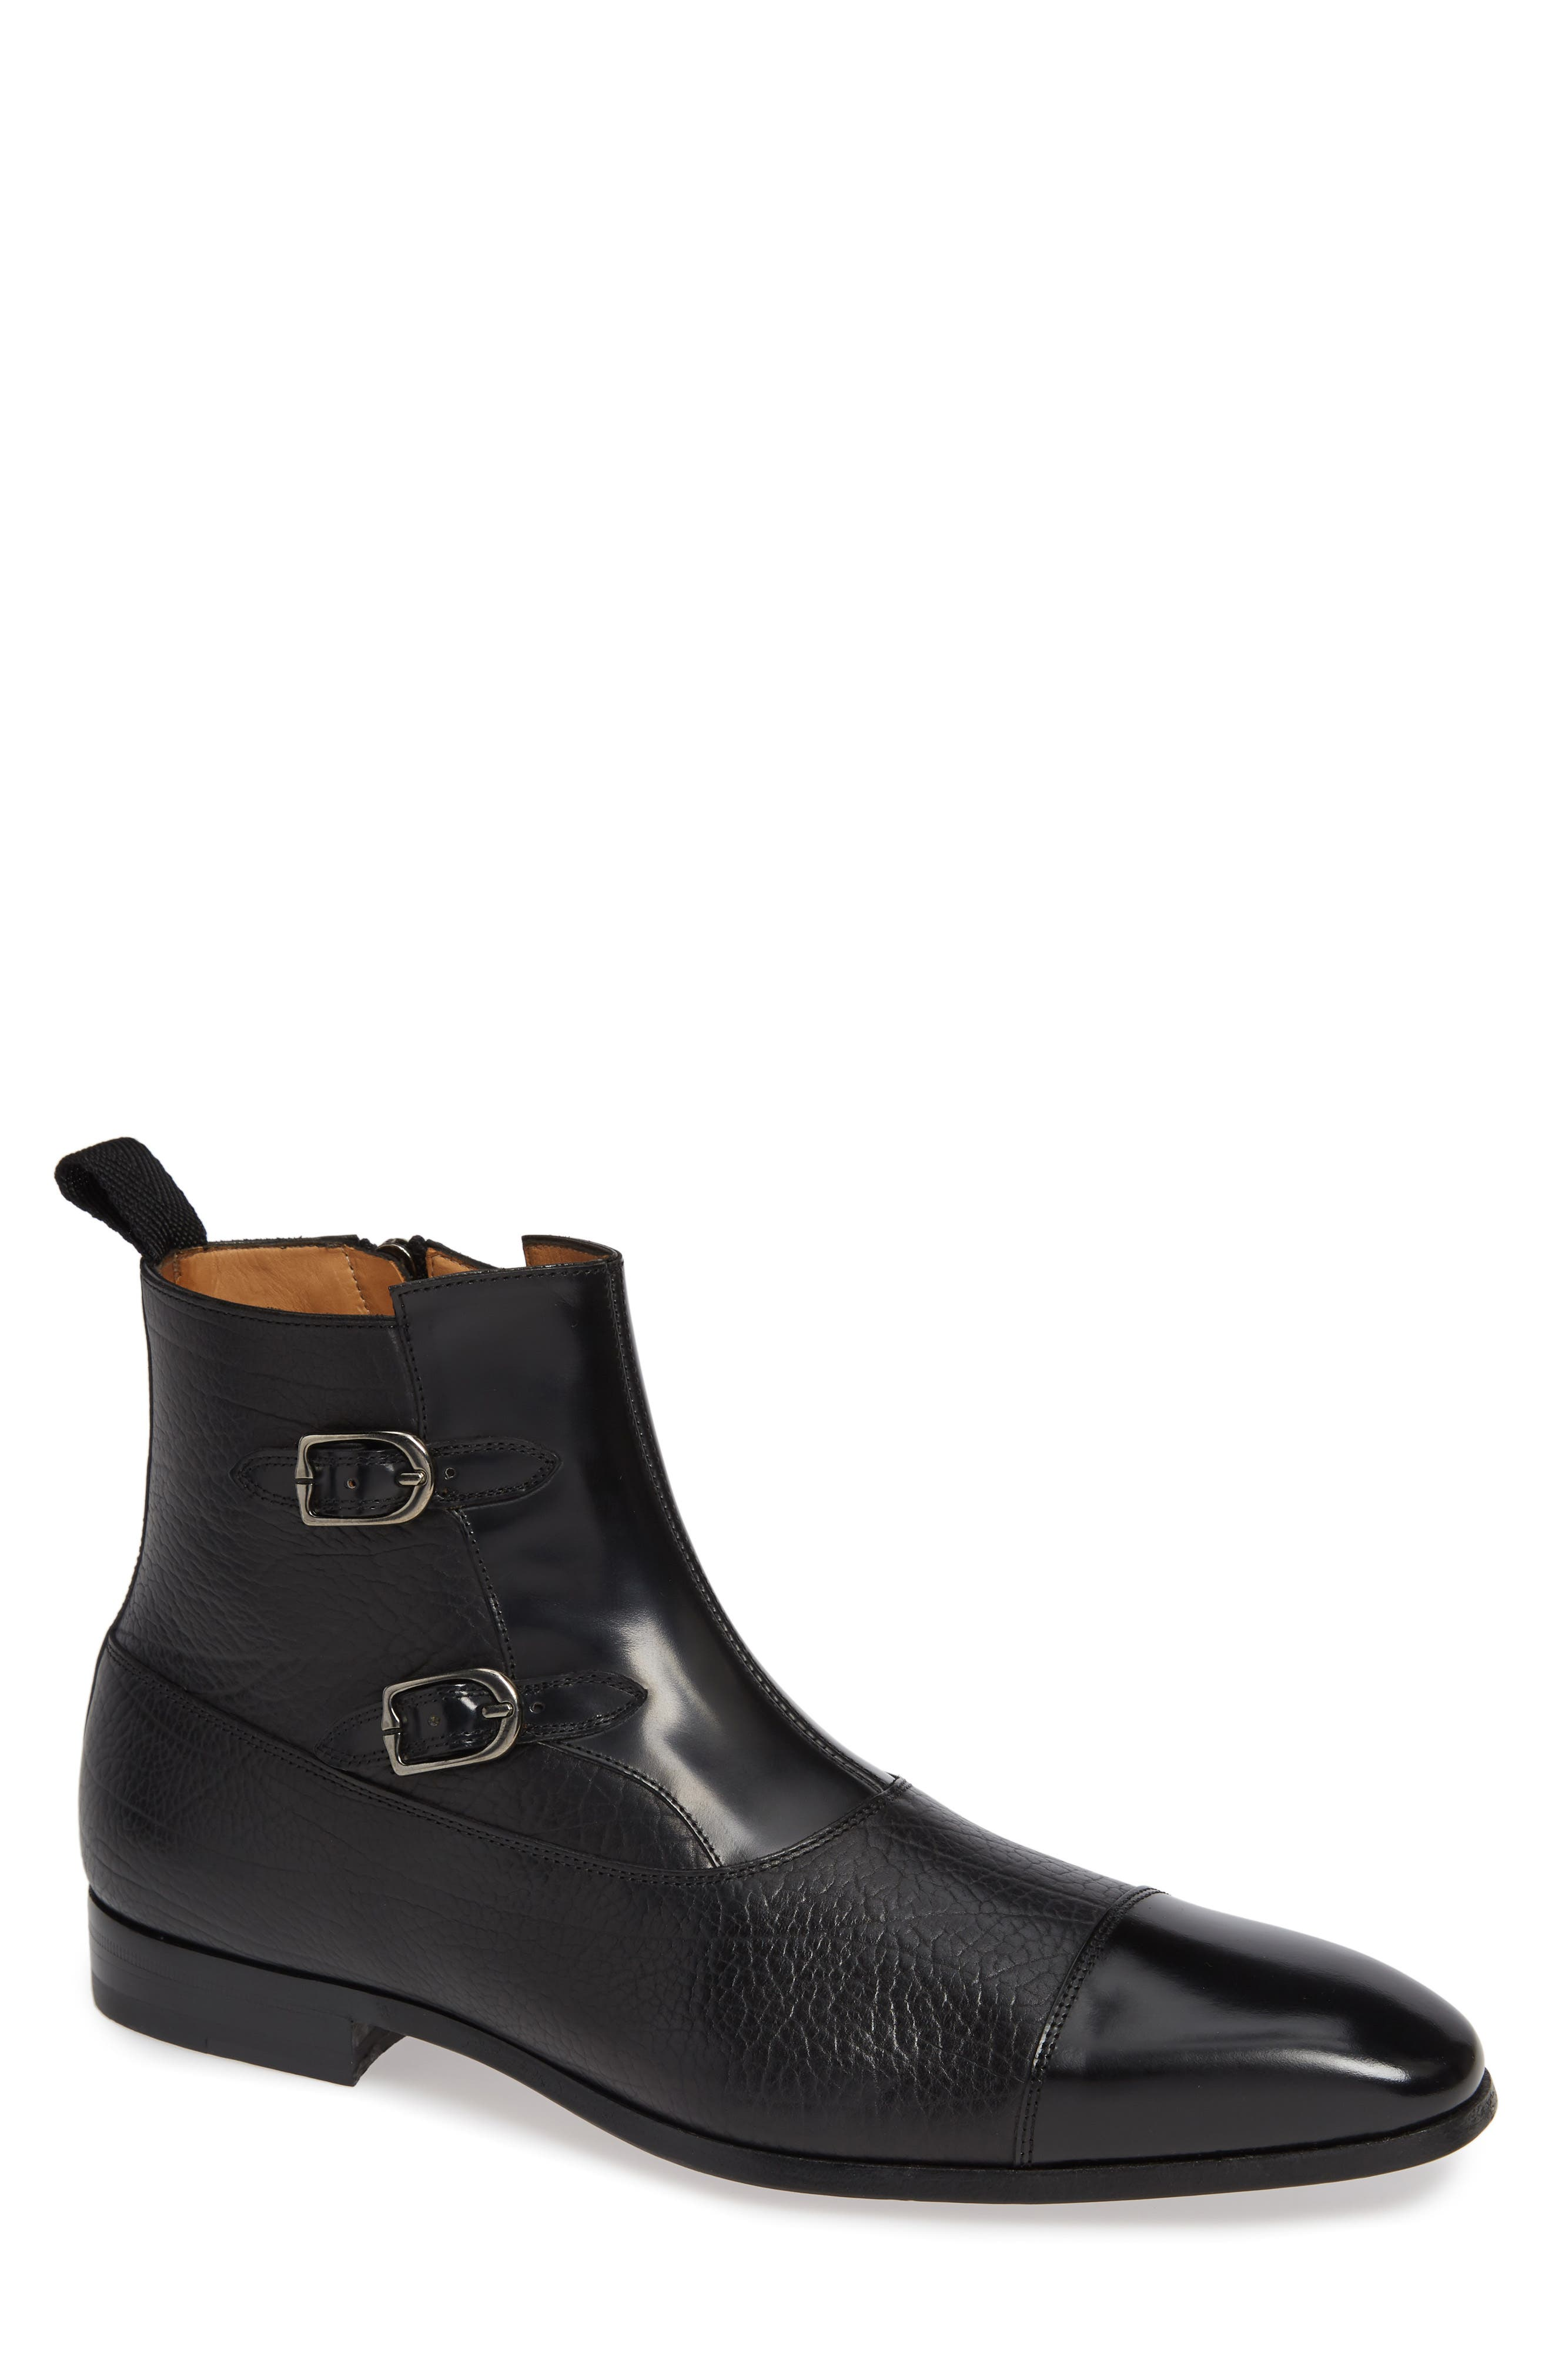 Tracy Double Buckle Cap Toe Boot,                         Main,                         color, BLACK LEATHER